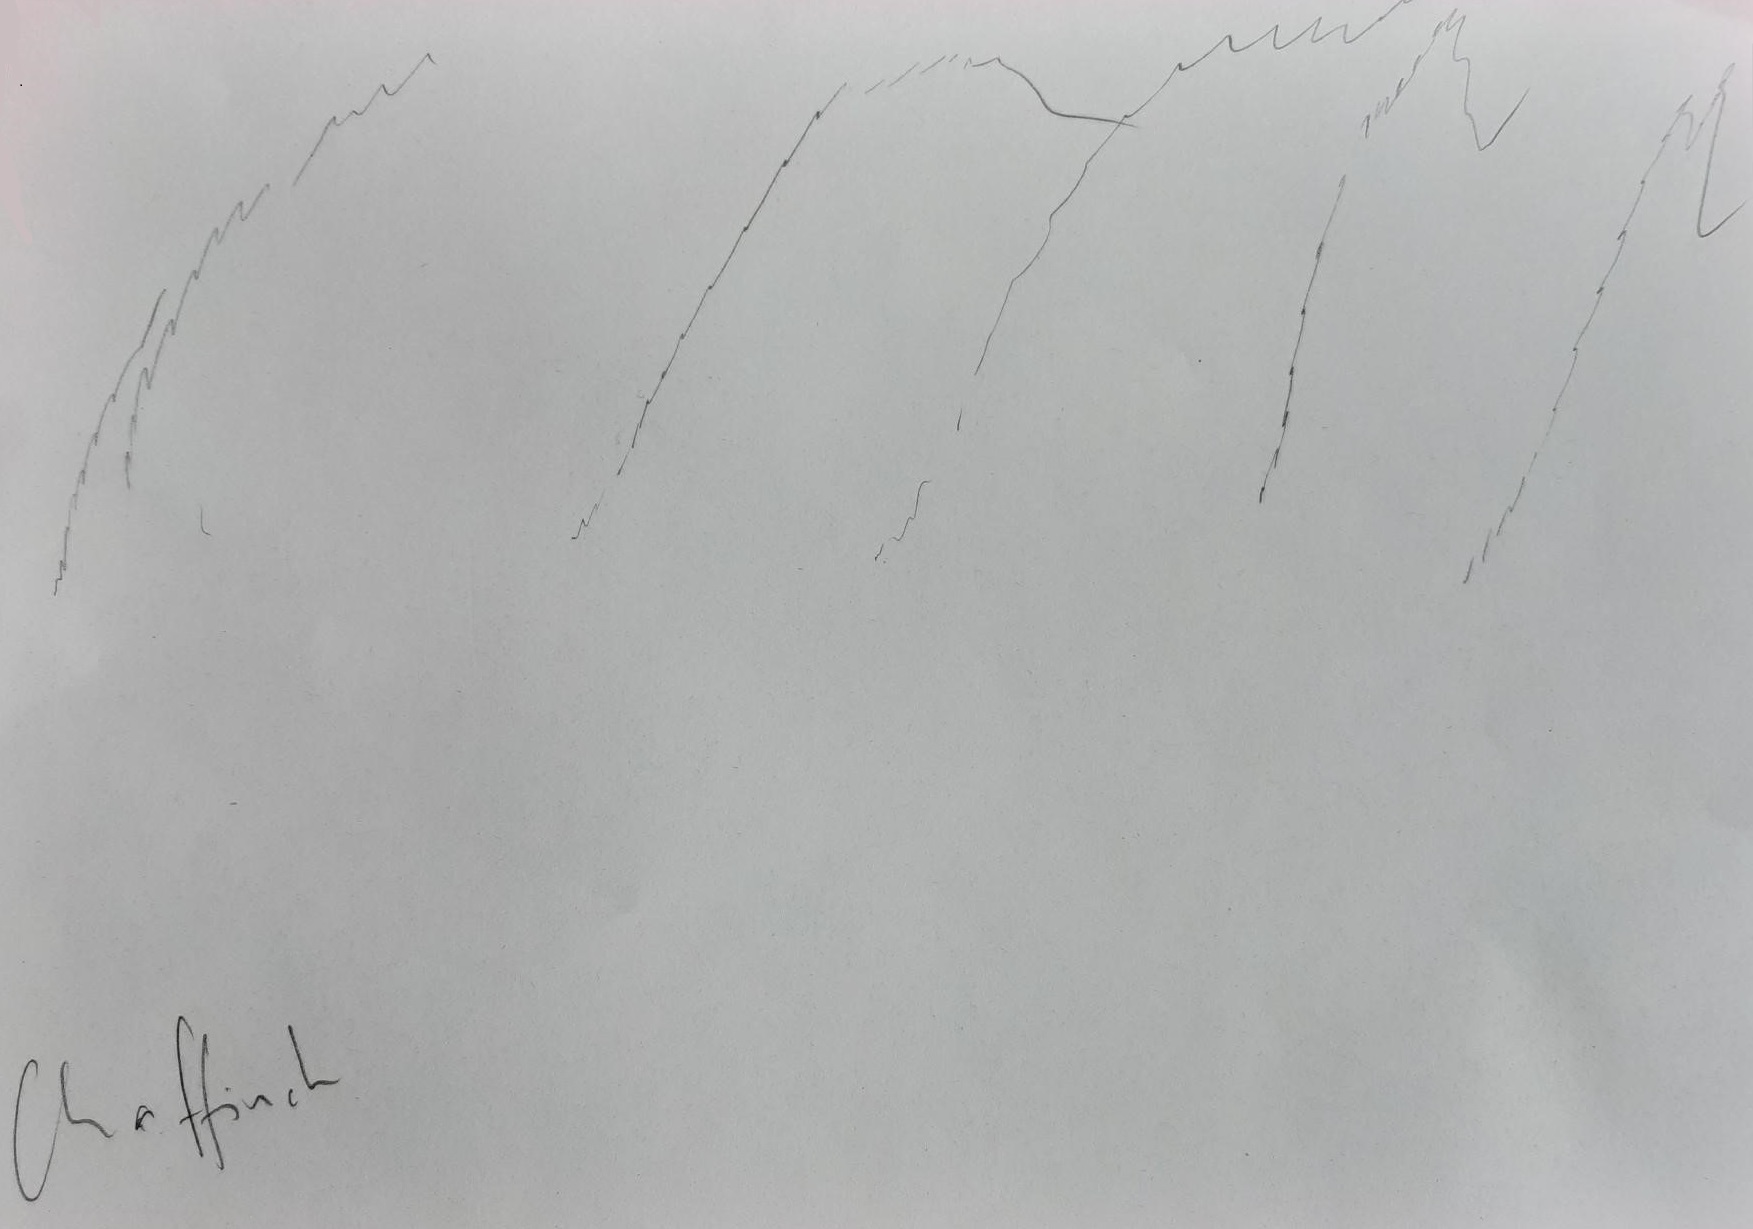 Drawing of chaffinch song